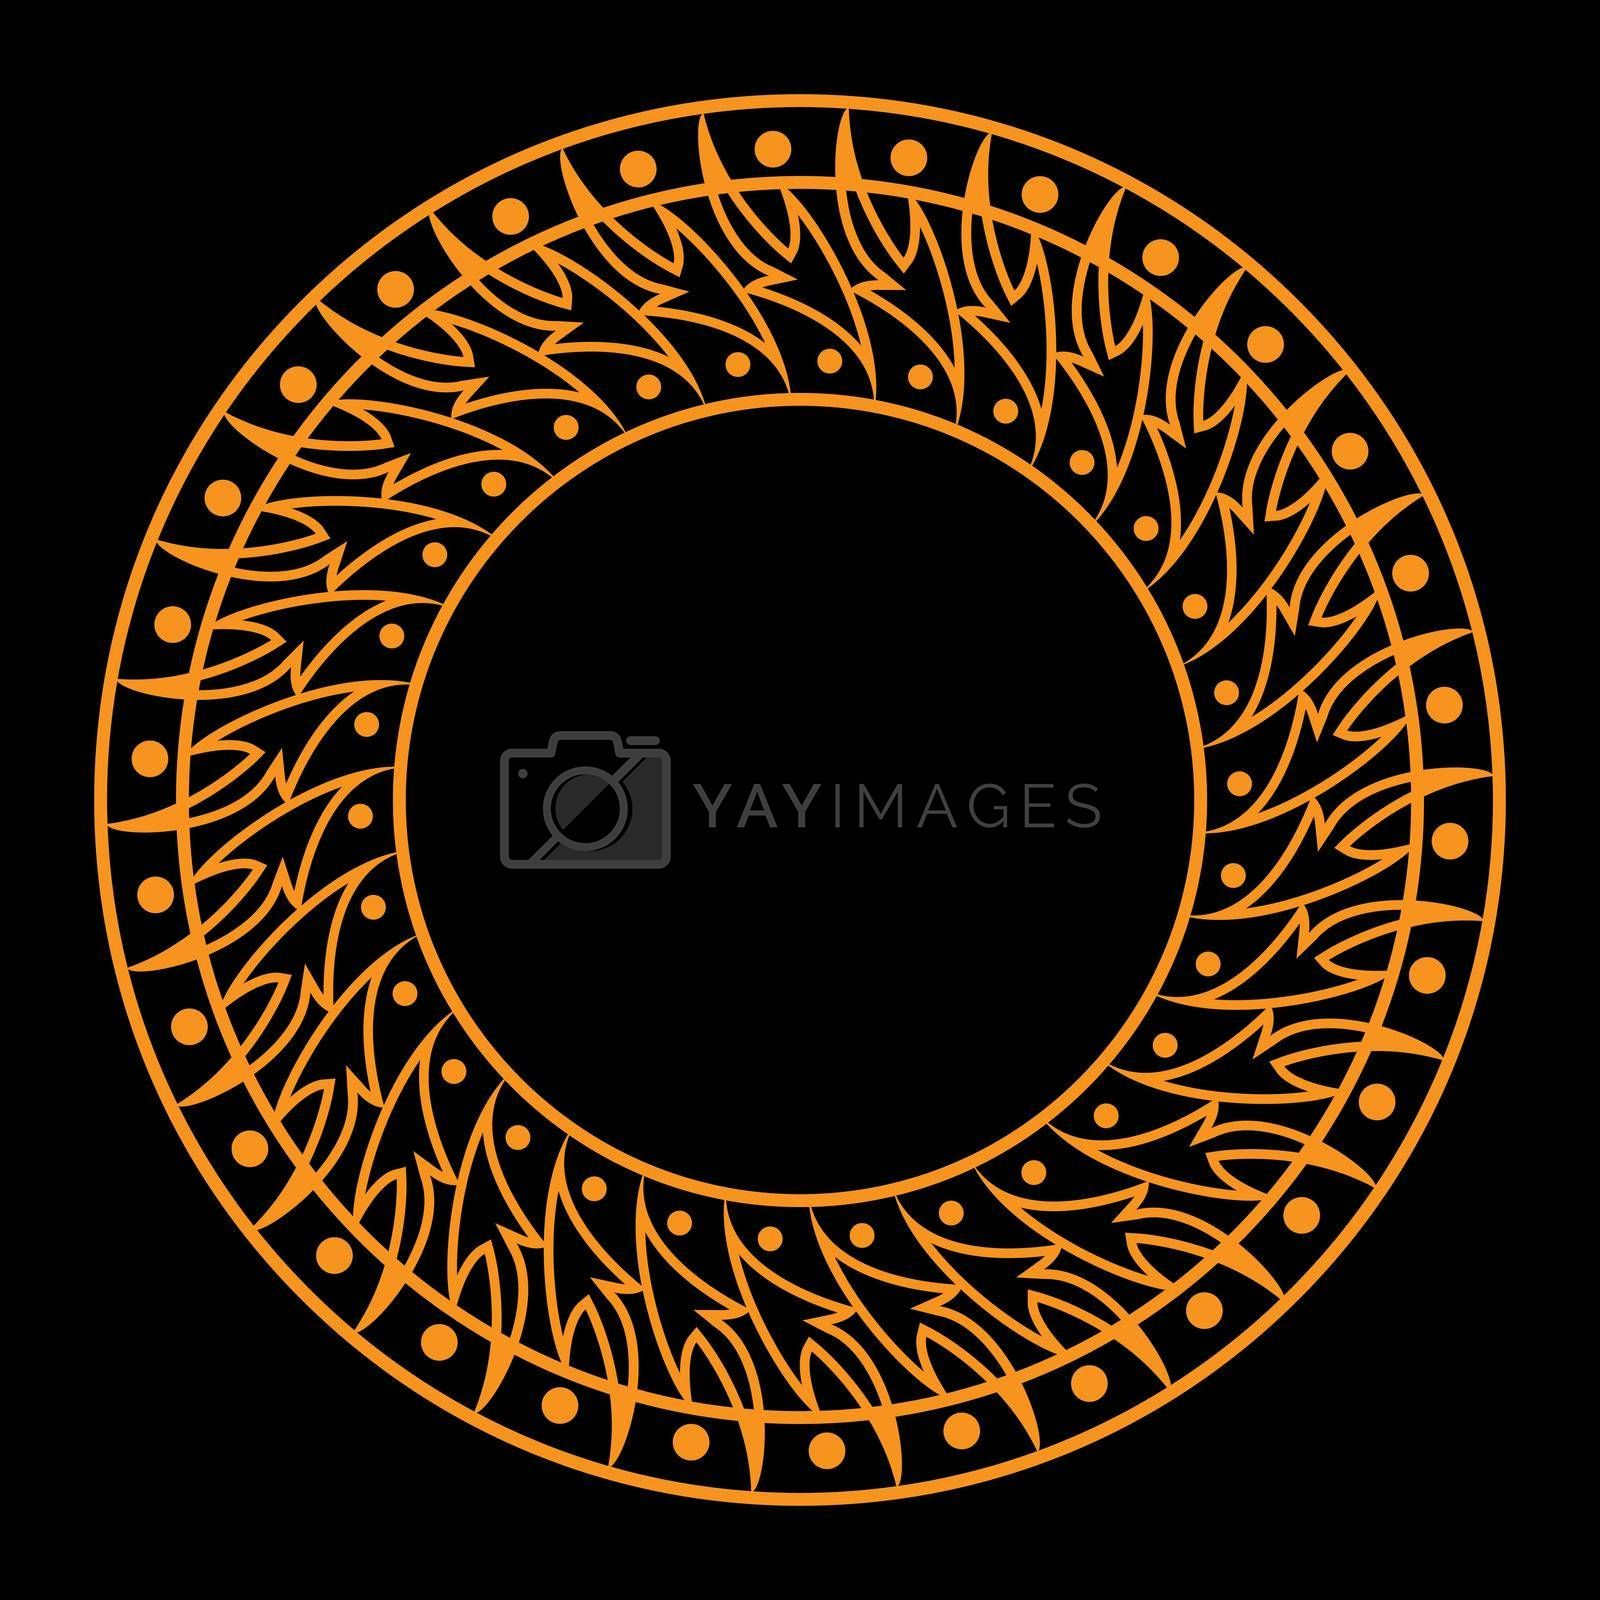 Gold decorative round frame. Template for the design of postcards, invitation banners, books, textiles, engraving, wood products, scrapbooking and creativity. Flat Style